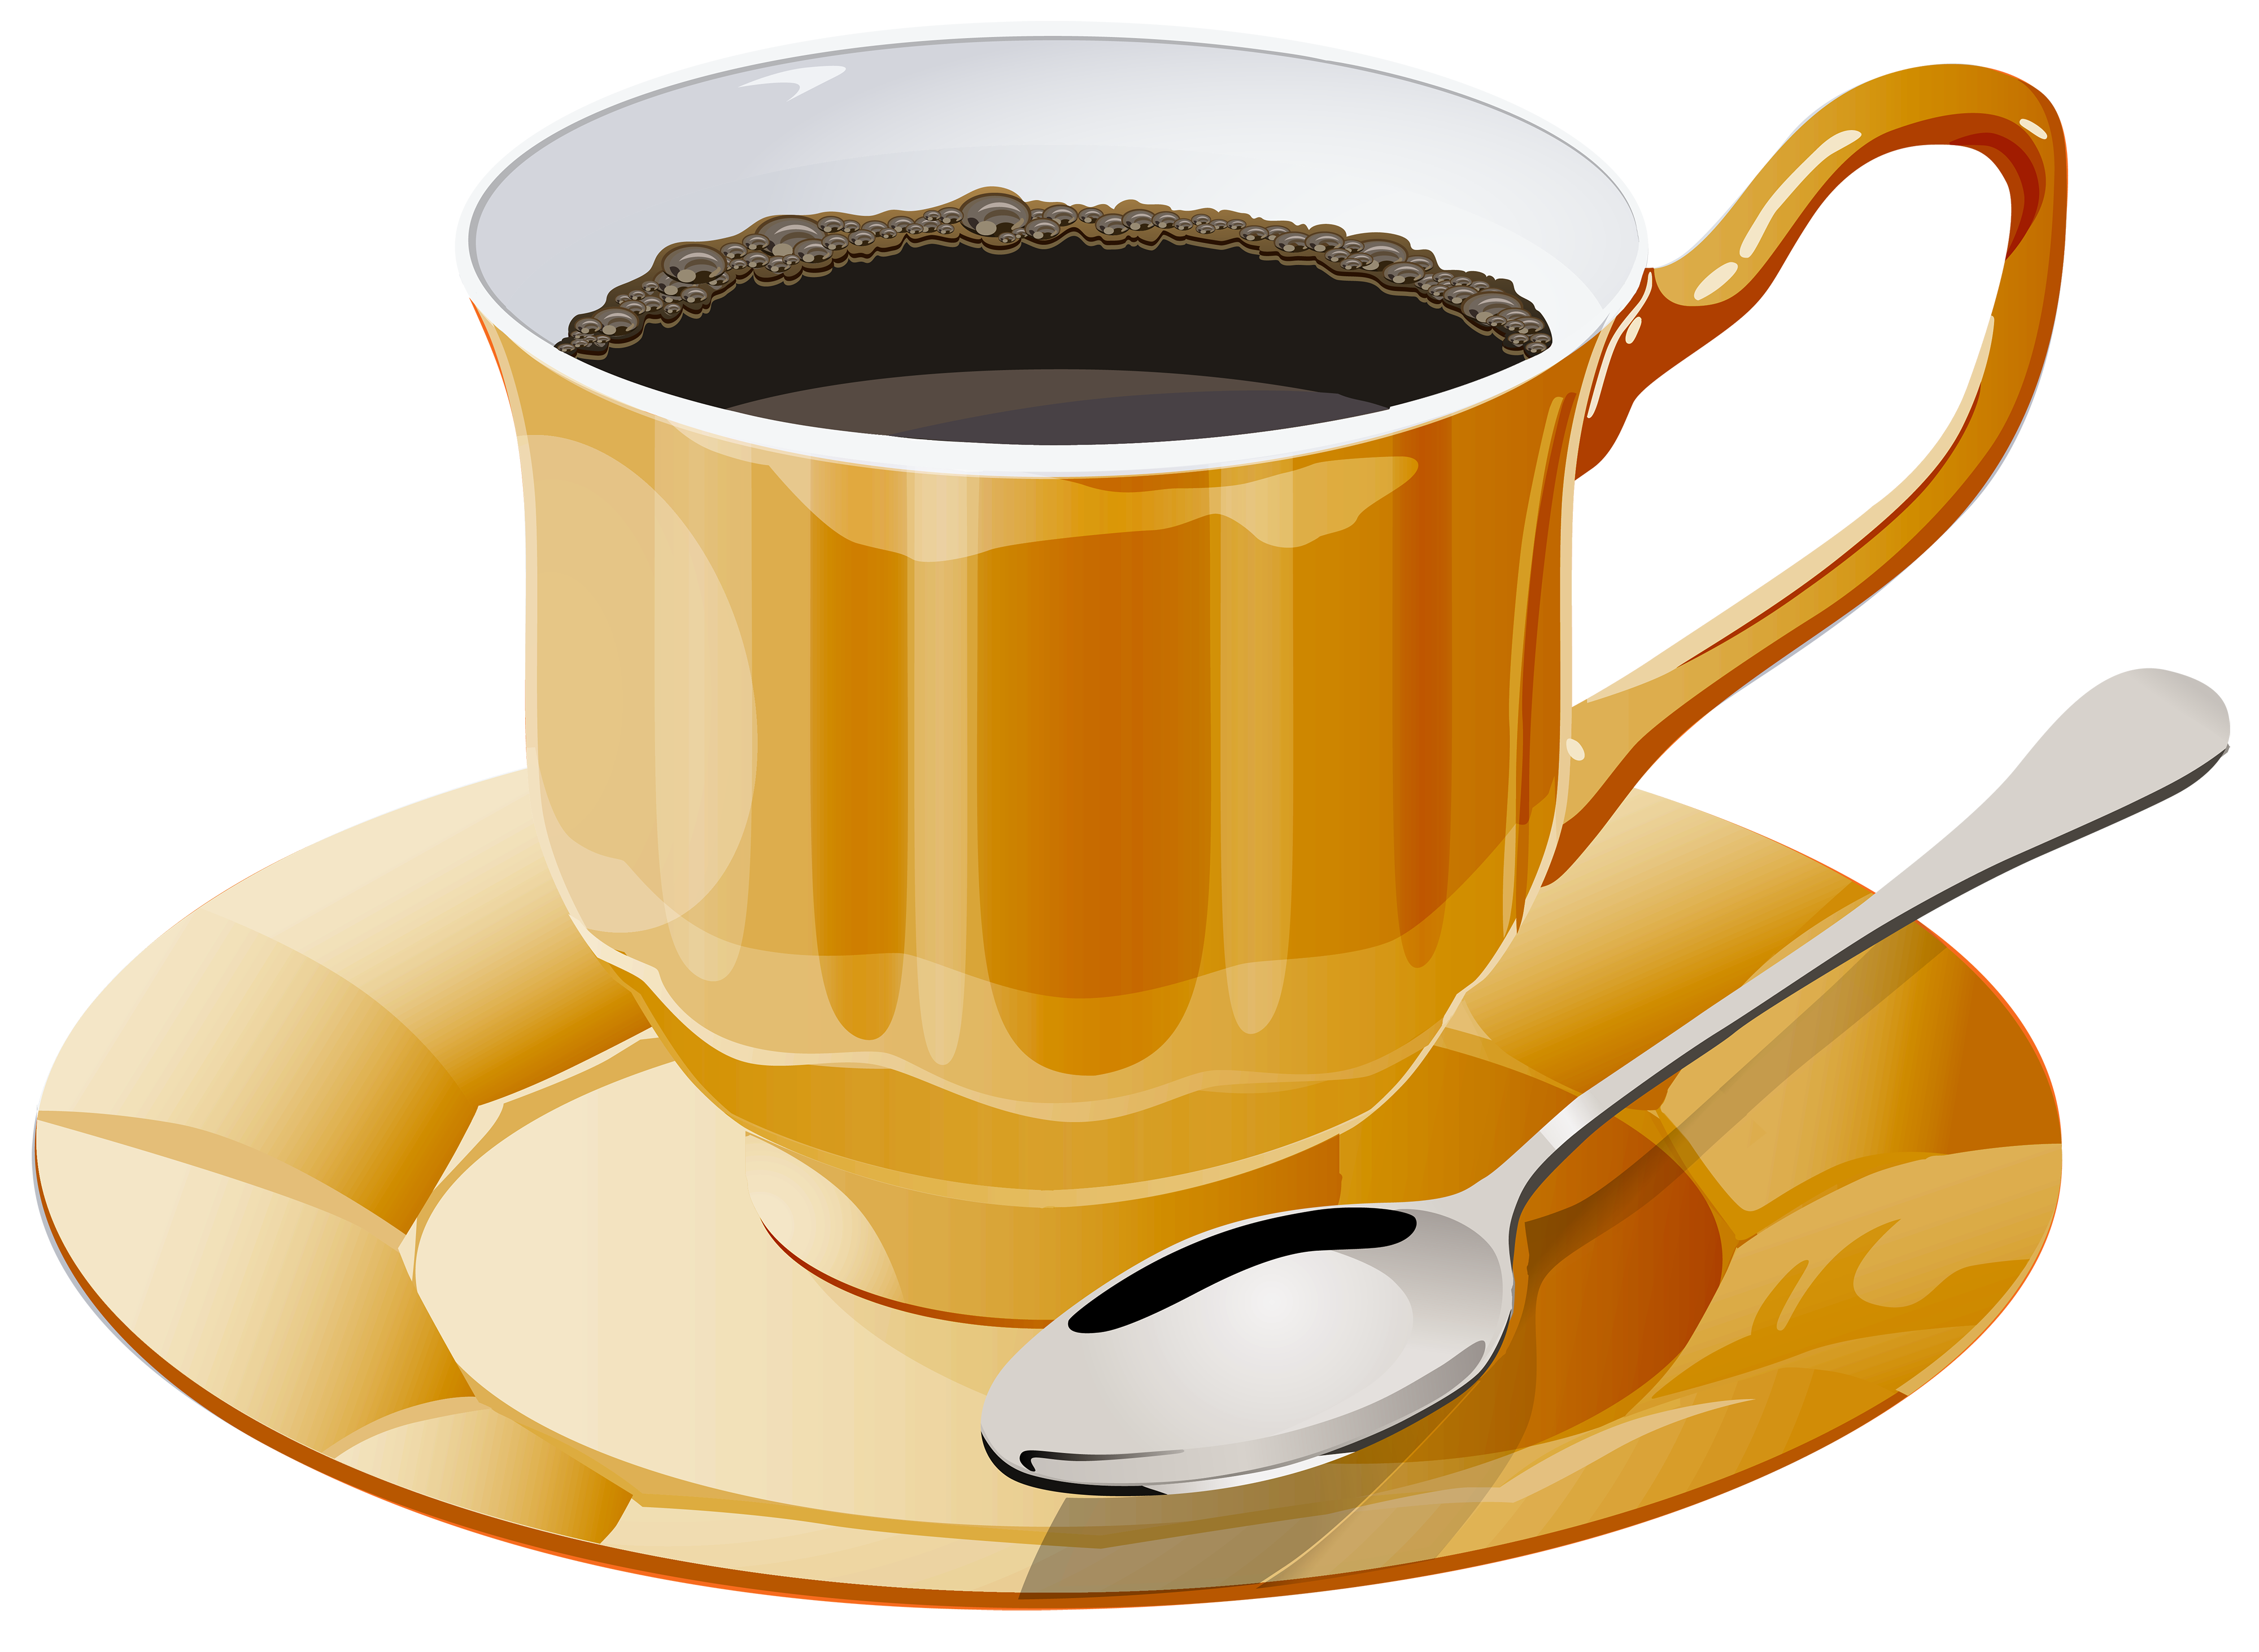 Coffee and book clipart picture royalty free library Yellow Cup of Coffee PNG Clipart - Best WEB Clipart picture royalty free library